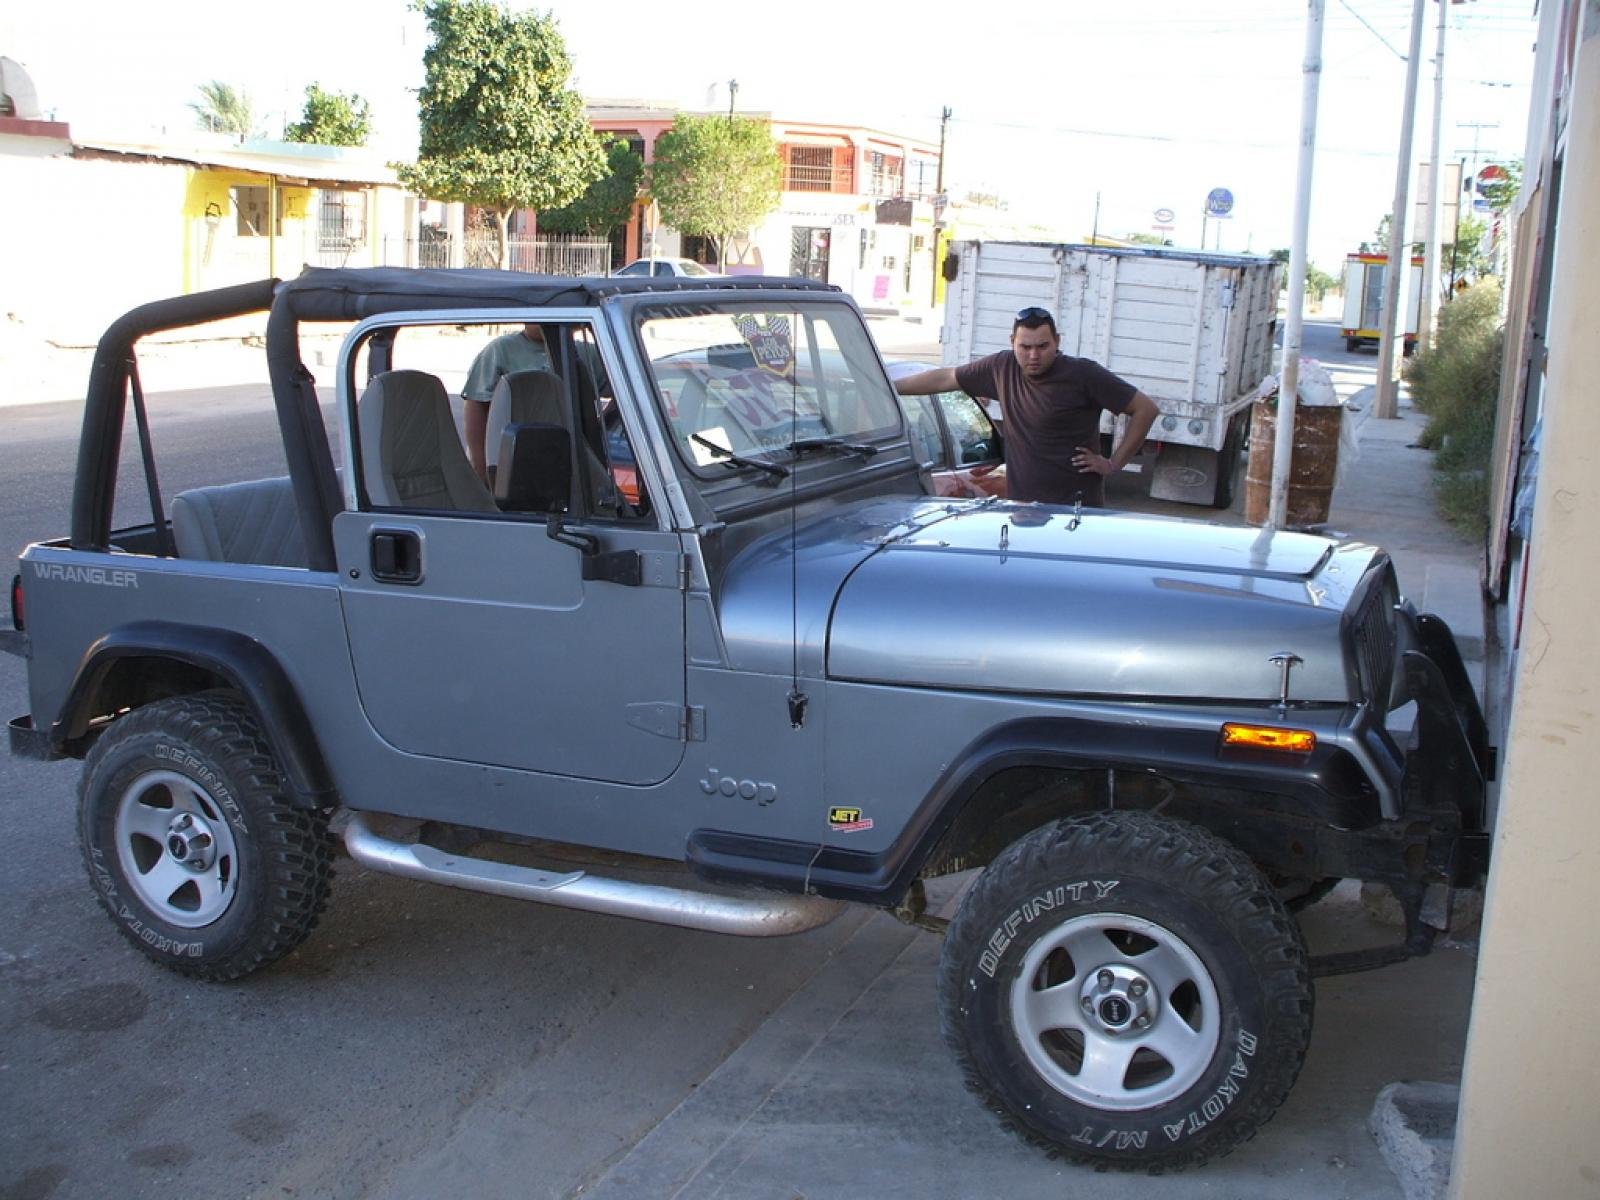 800 1024 1280 1600 origin 1994 Jeep Wrangler ...